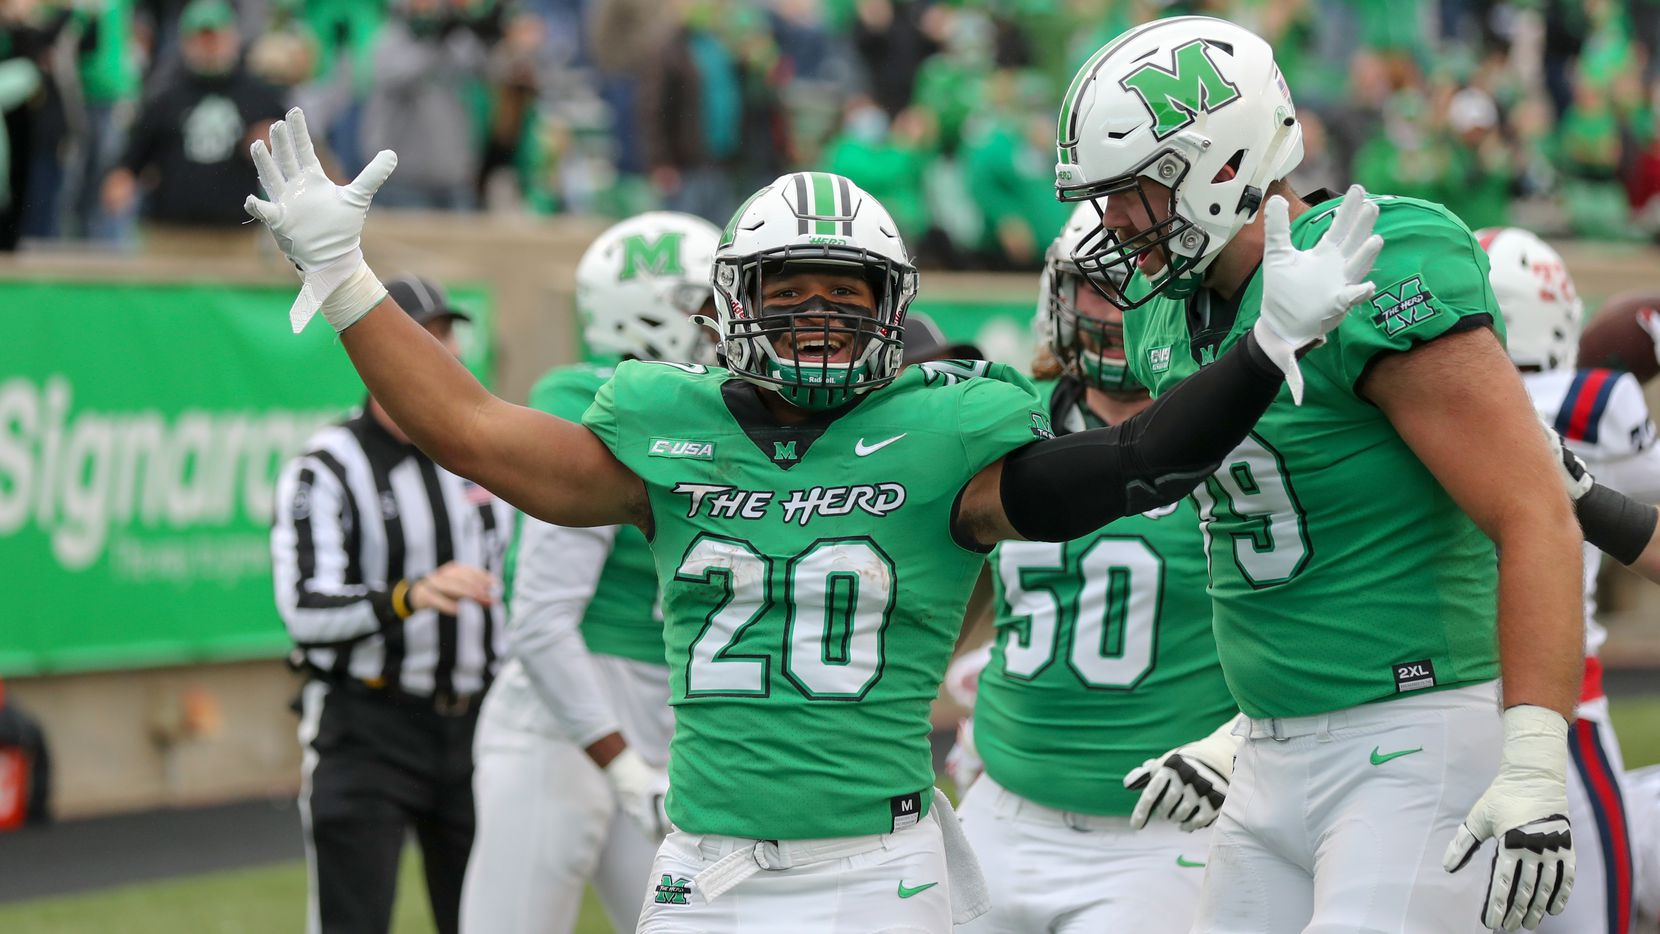 HUNTINGTON, WV - OCTOBER 24: Marshall Thundering Herd running back Brenden Knox (20) celebrates after scoring on a 58-yard pass reception during the first quarter of the college football game between the Florida Atlantic Owls and the Marshall Thundering Herd on October 24, 2020, at Joan C. Edwards Stadium in Huntington, WV.(Photo by Frank Jansky/Icon Sportswire via Getty Images)